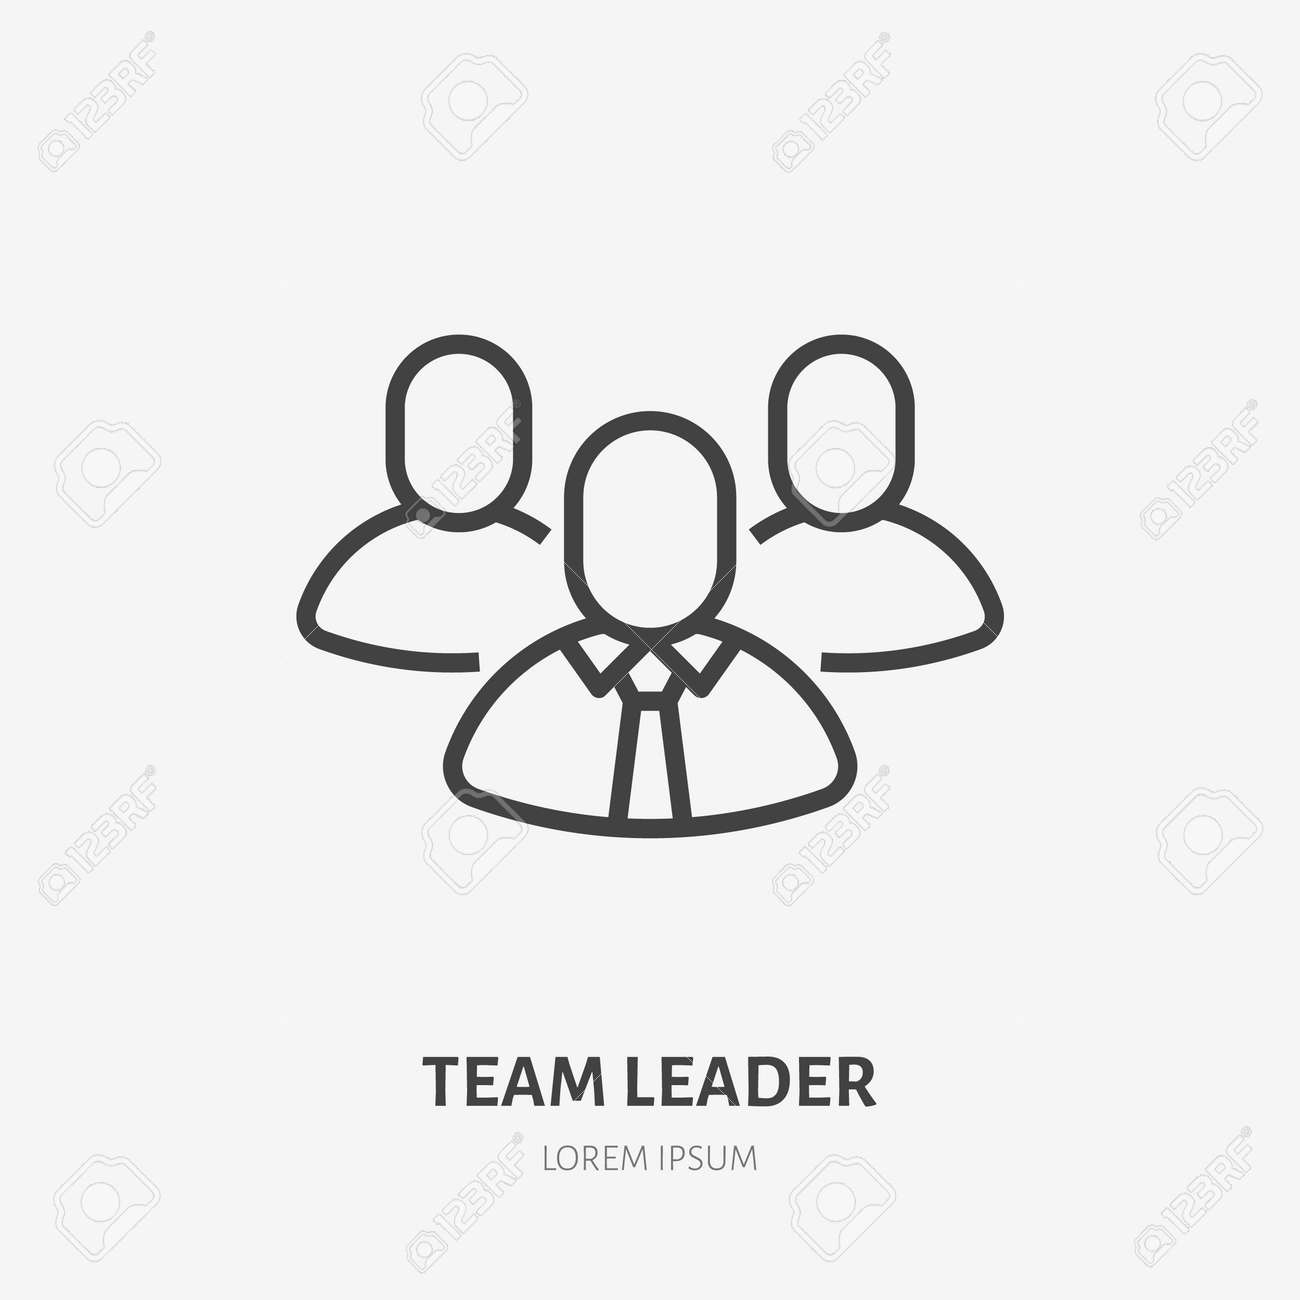 Team leader line icon, vector pictogram of employer with employee. Businessman stroke sign for company. - 158818241